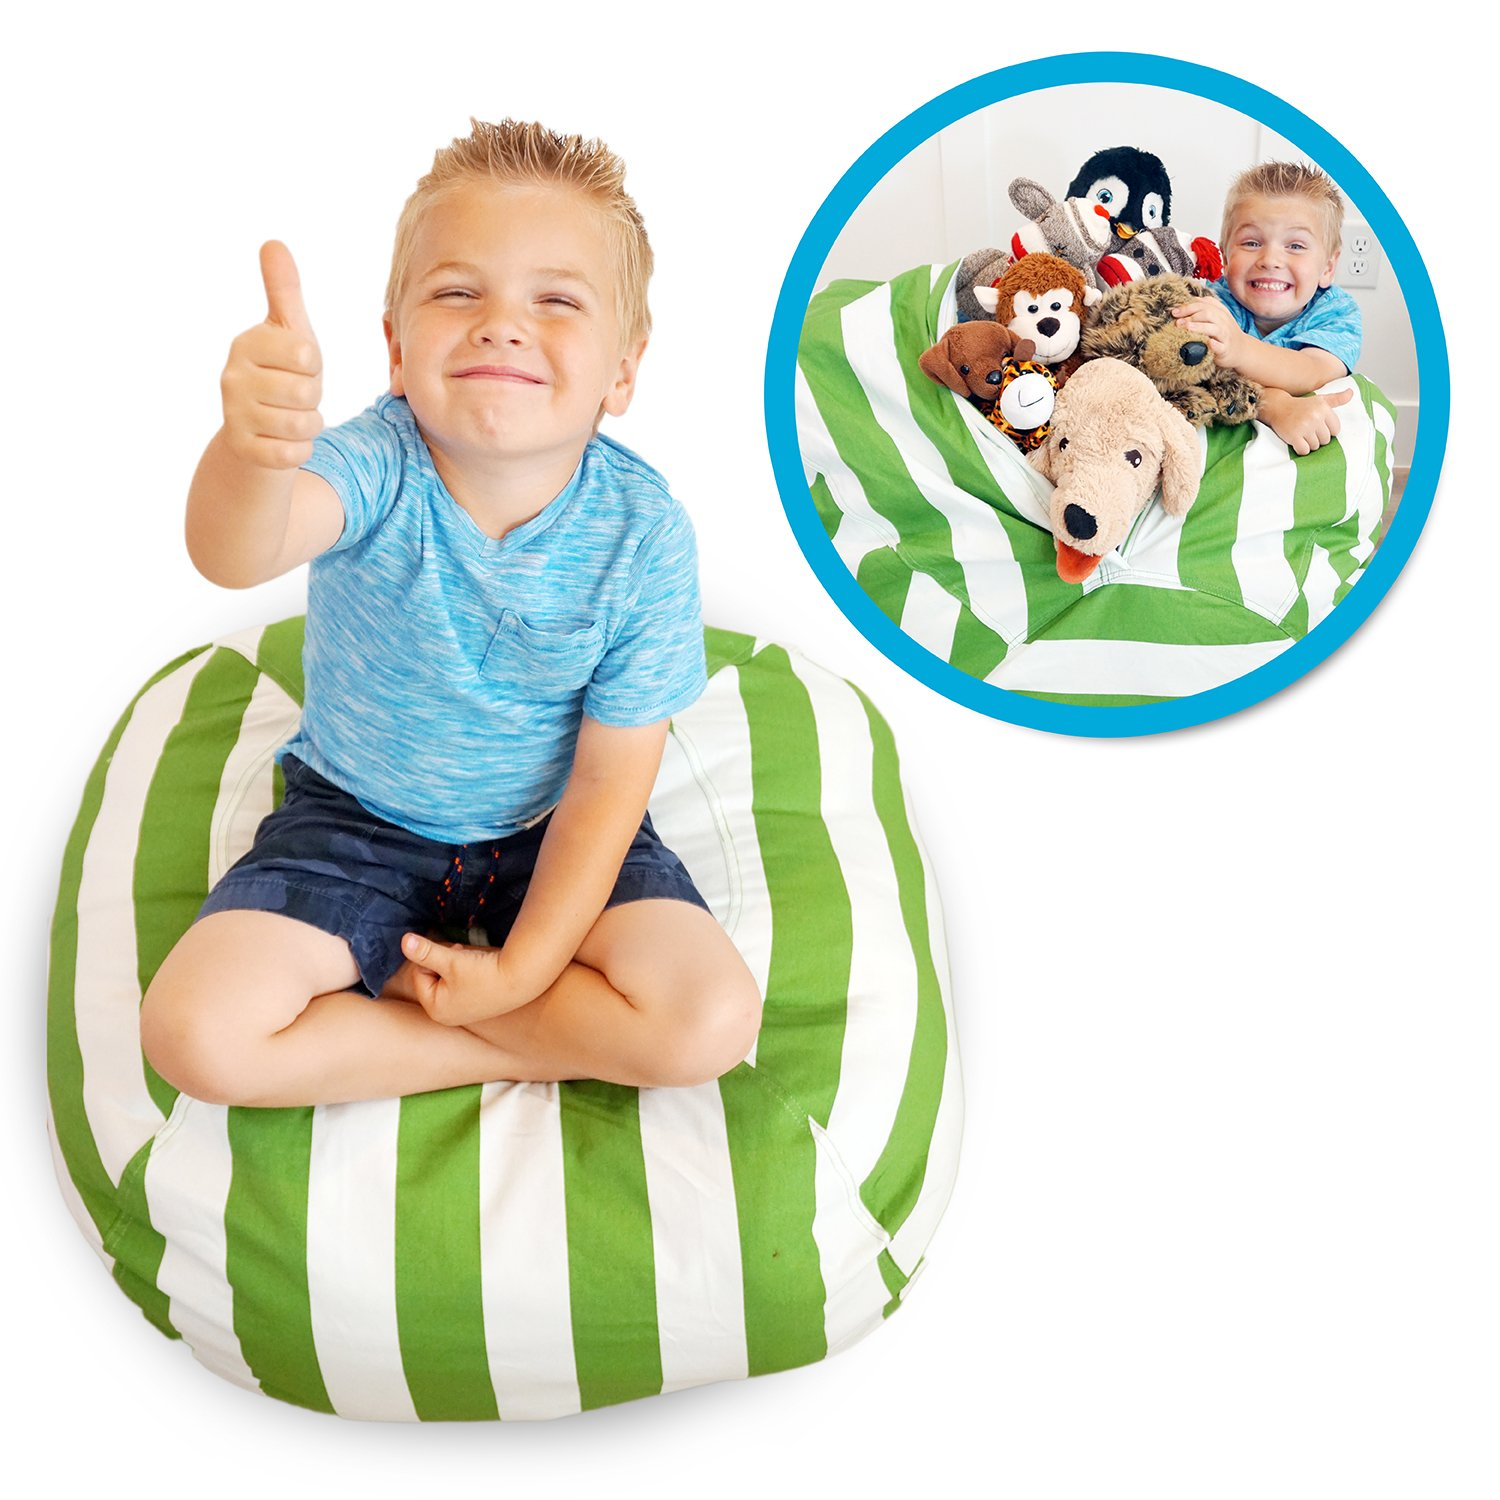 Soothing Company Stuffed Animal Bean Bag Chair for Kids - Extra Large Empty Beanbag